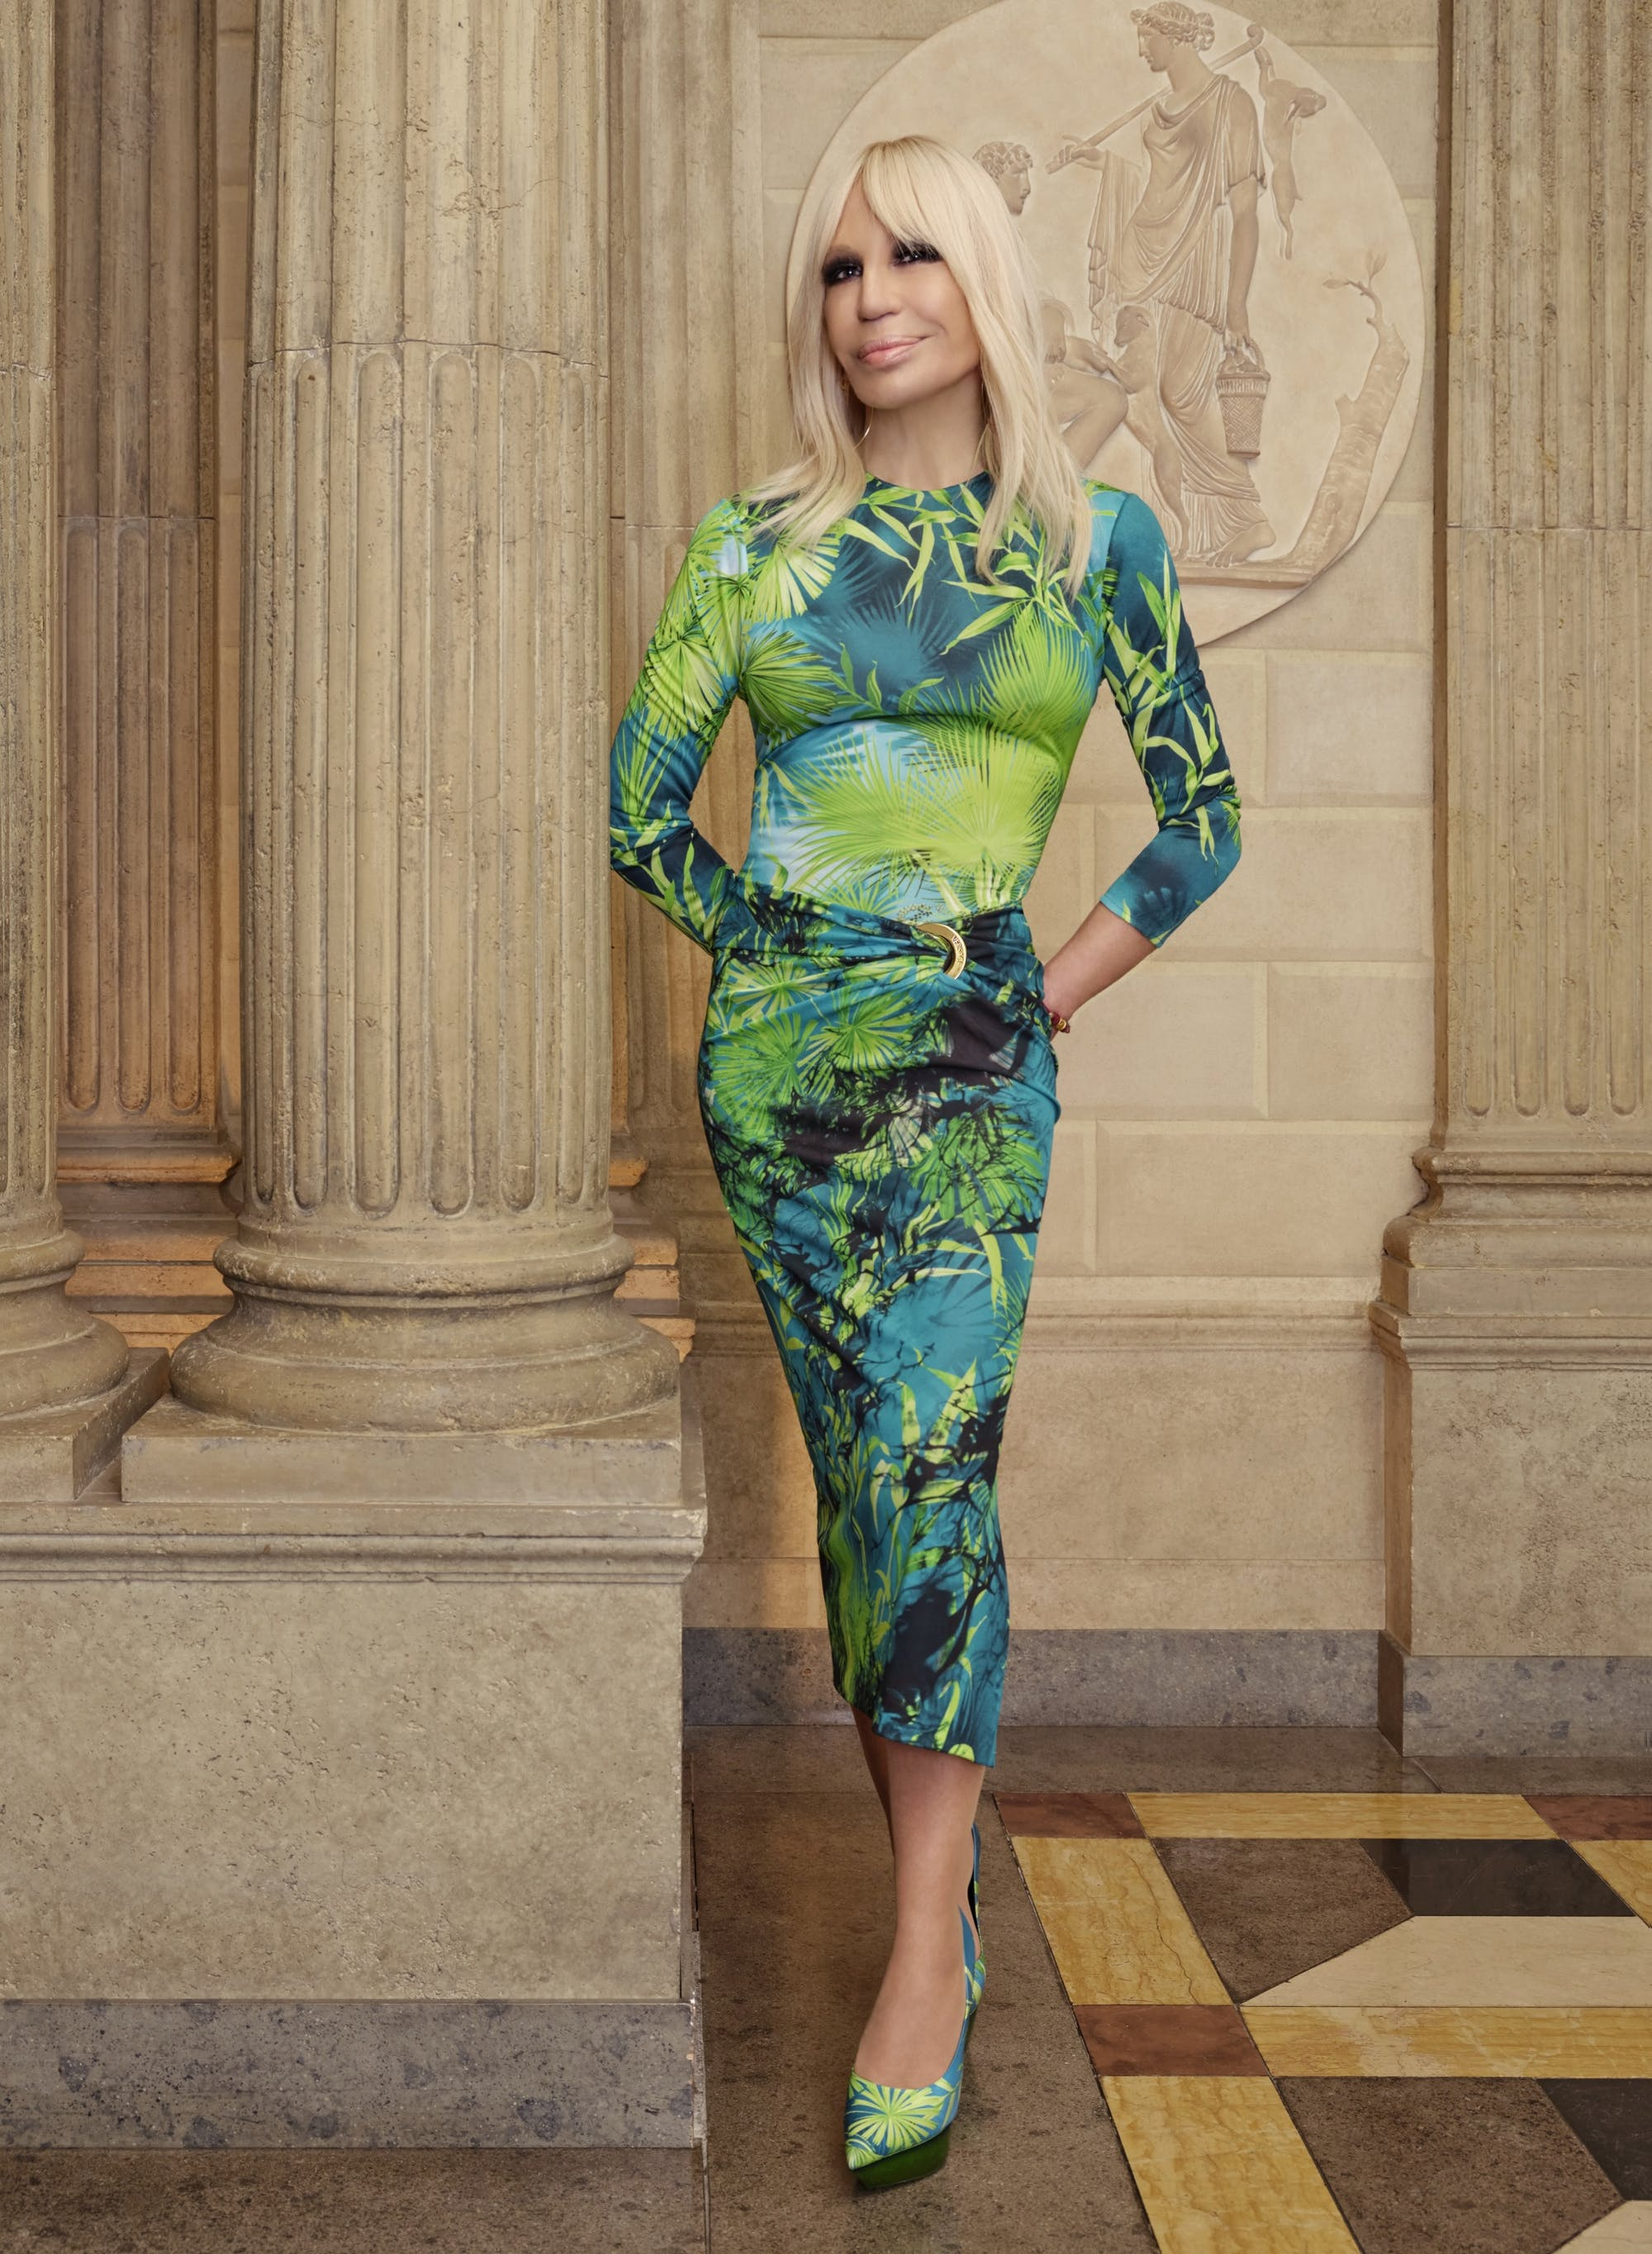 Grace Under Fire: Luxury leadership in troubled times  The power of the Medusa – an interview with Donatella Versace